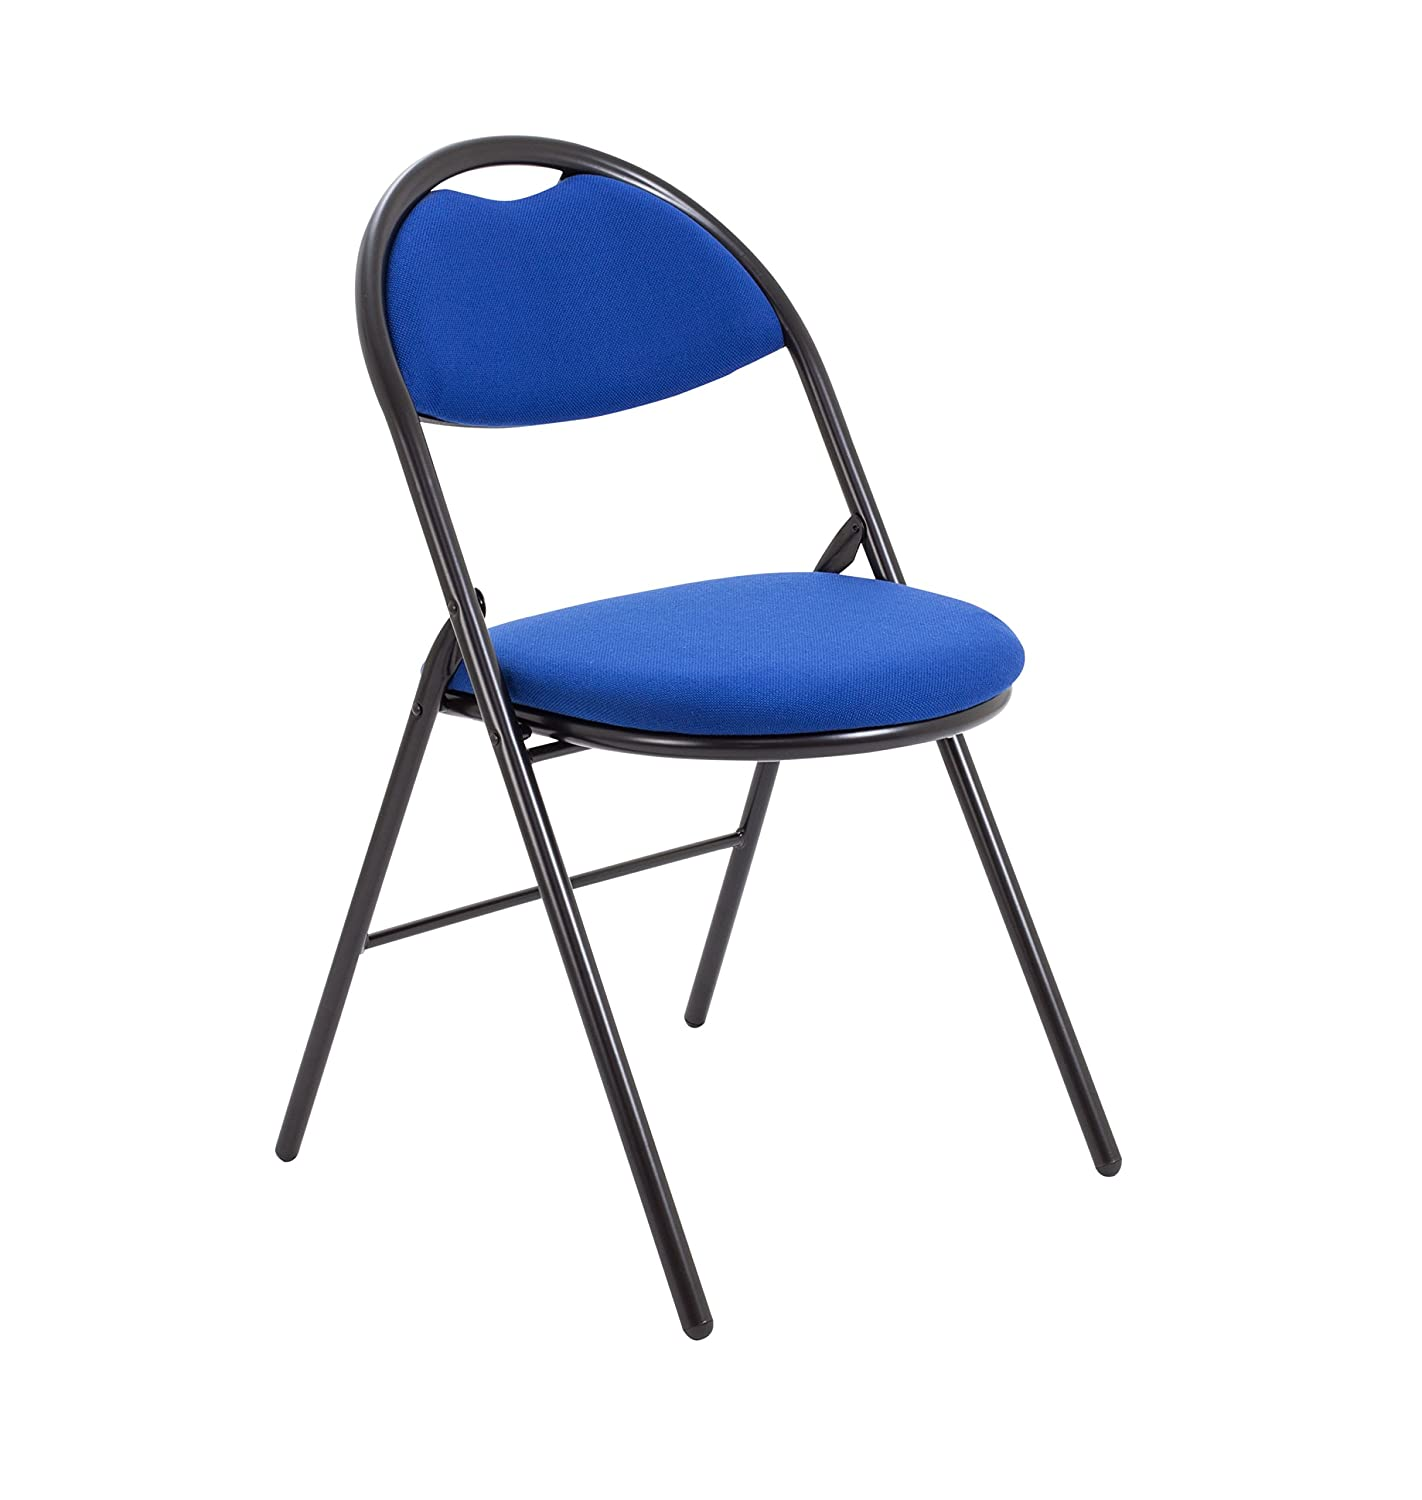 Office Hippo Folding Upholstered Meeting Chair, Fabric - Royal Blue TC Group OHS0110RB